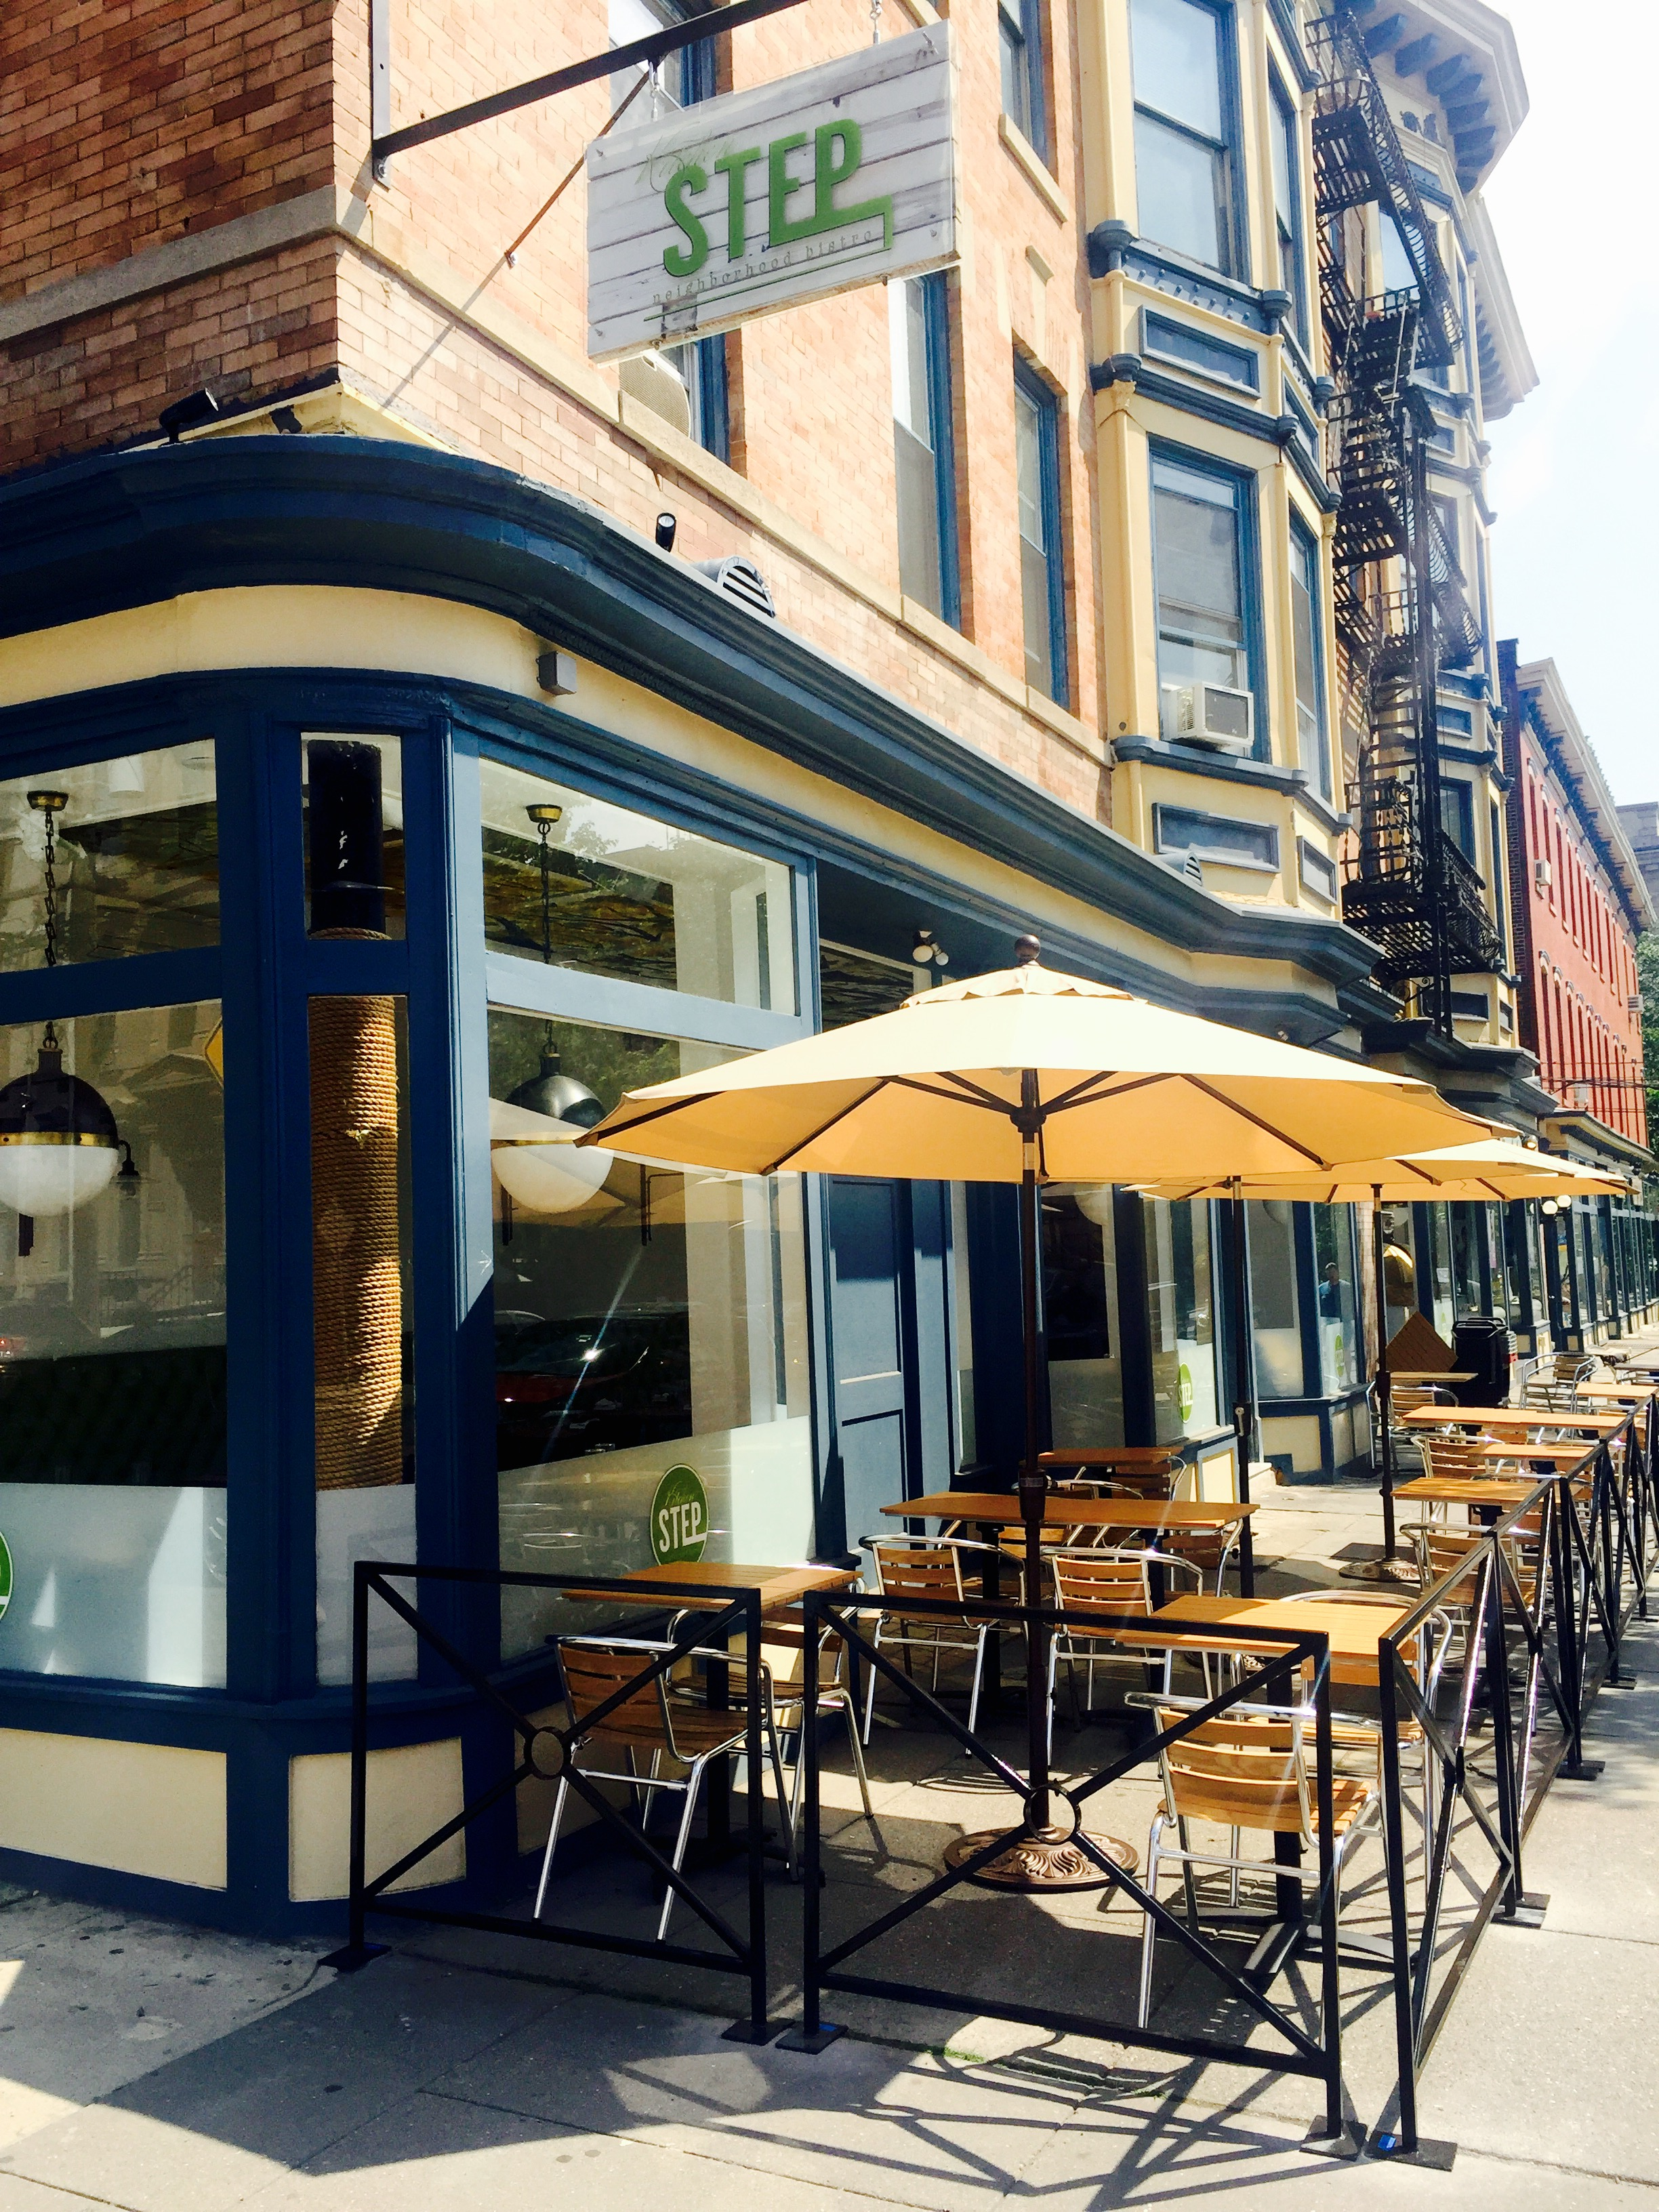 patio seating now open - Glass Front Cafe 2015